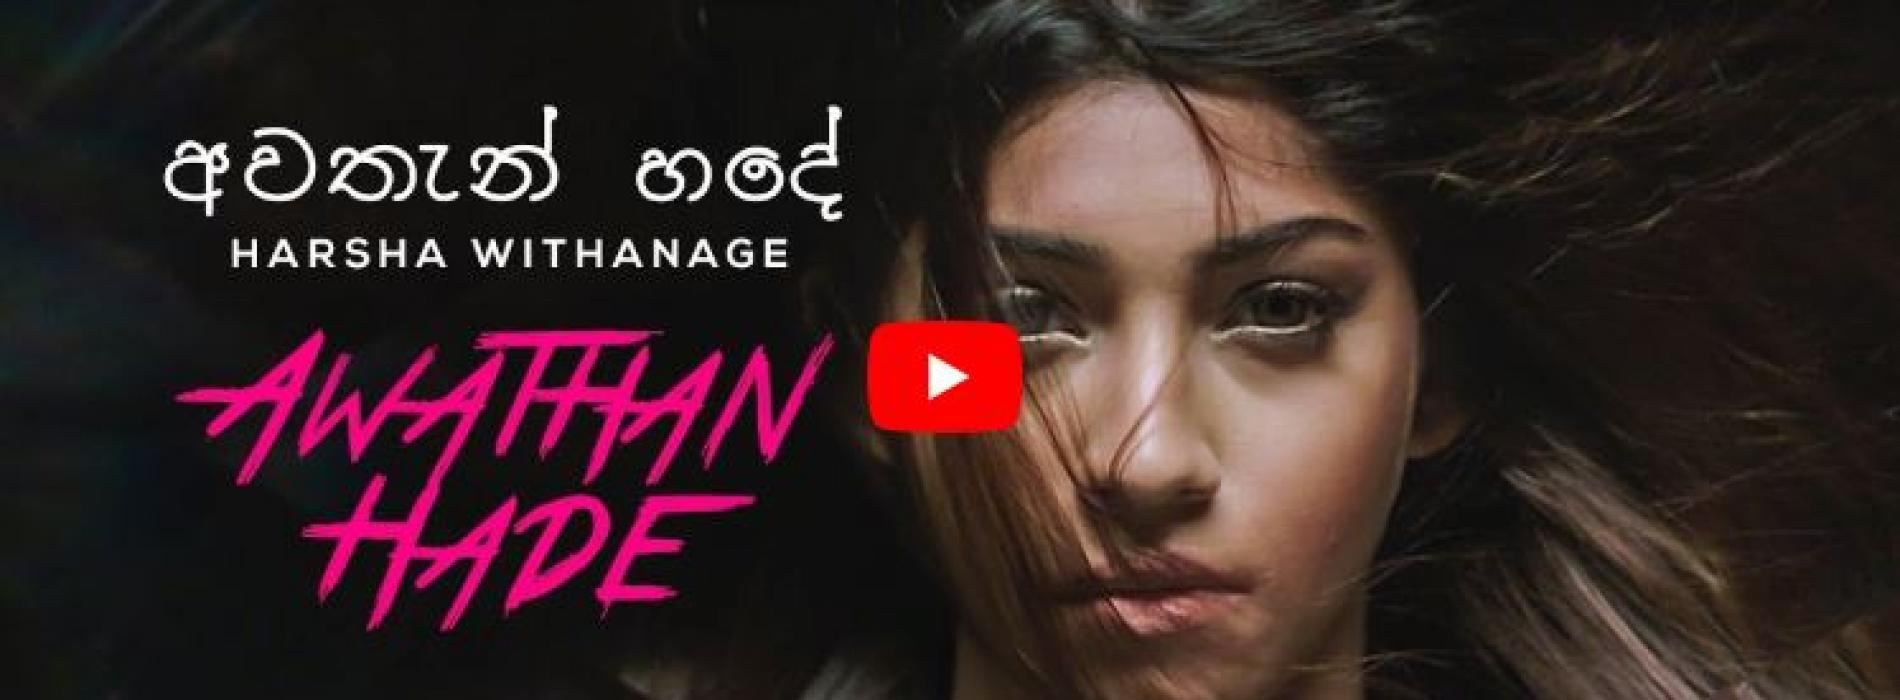 Awathan hade (අවතැන් හදේ) – Harsha Withanage | Official Music Video